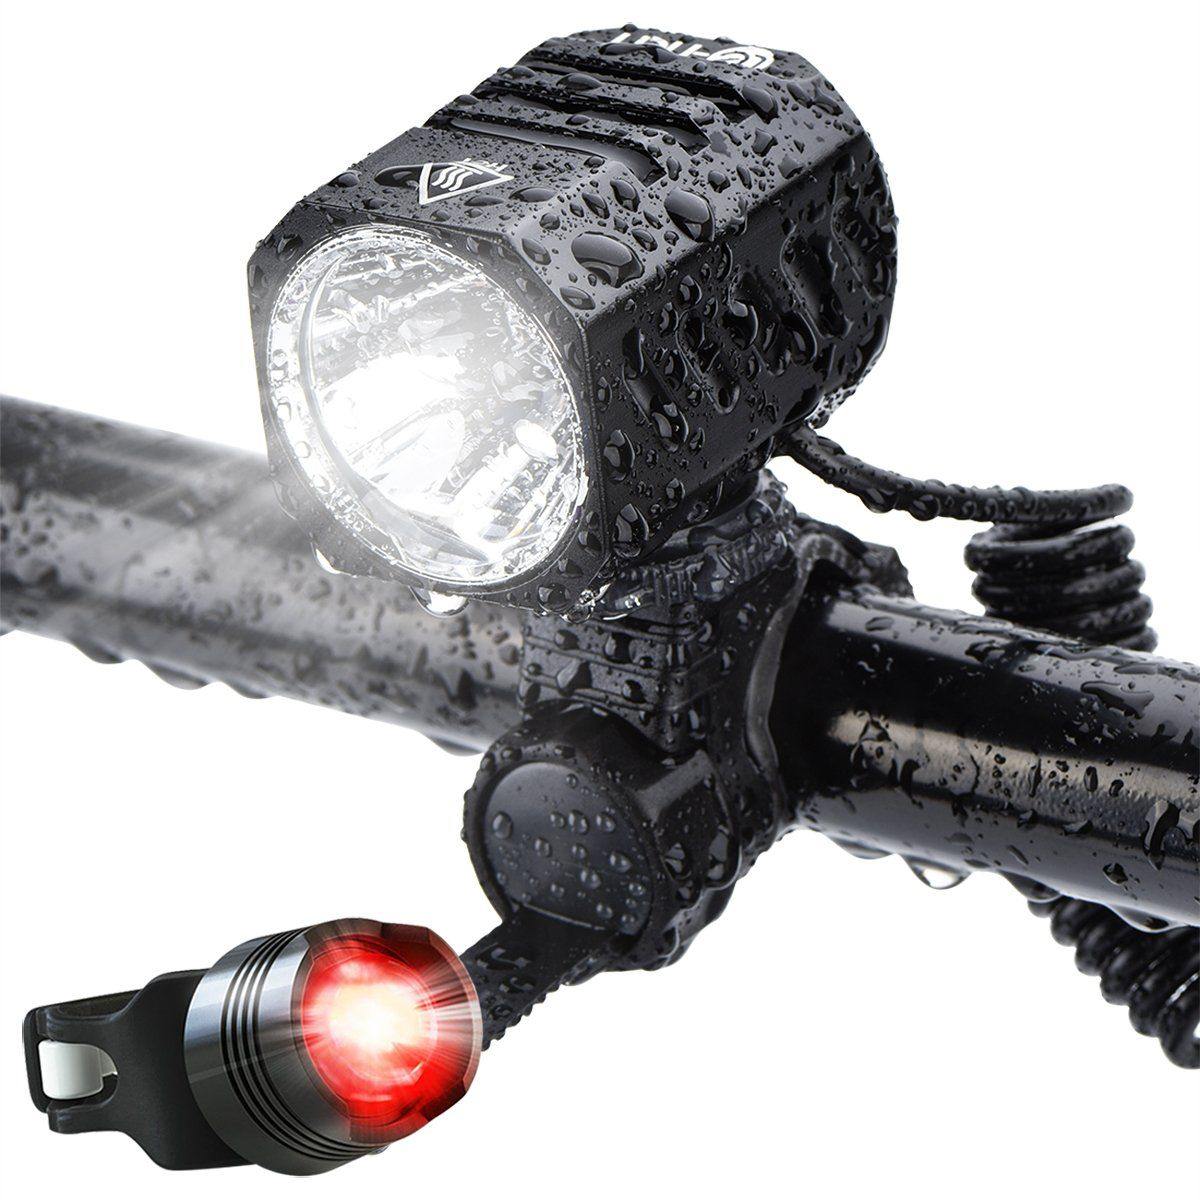 Super Bright Bike Light Usb Rechargeable Terich 1200 Lumens Waterproof Road Mountain Bicycle Headlight And Led Tai Bike Headlight Bike Lights Bike Lights Led